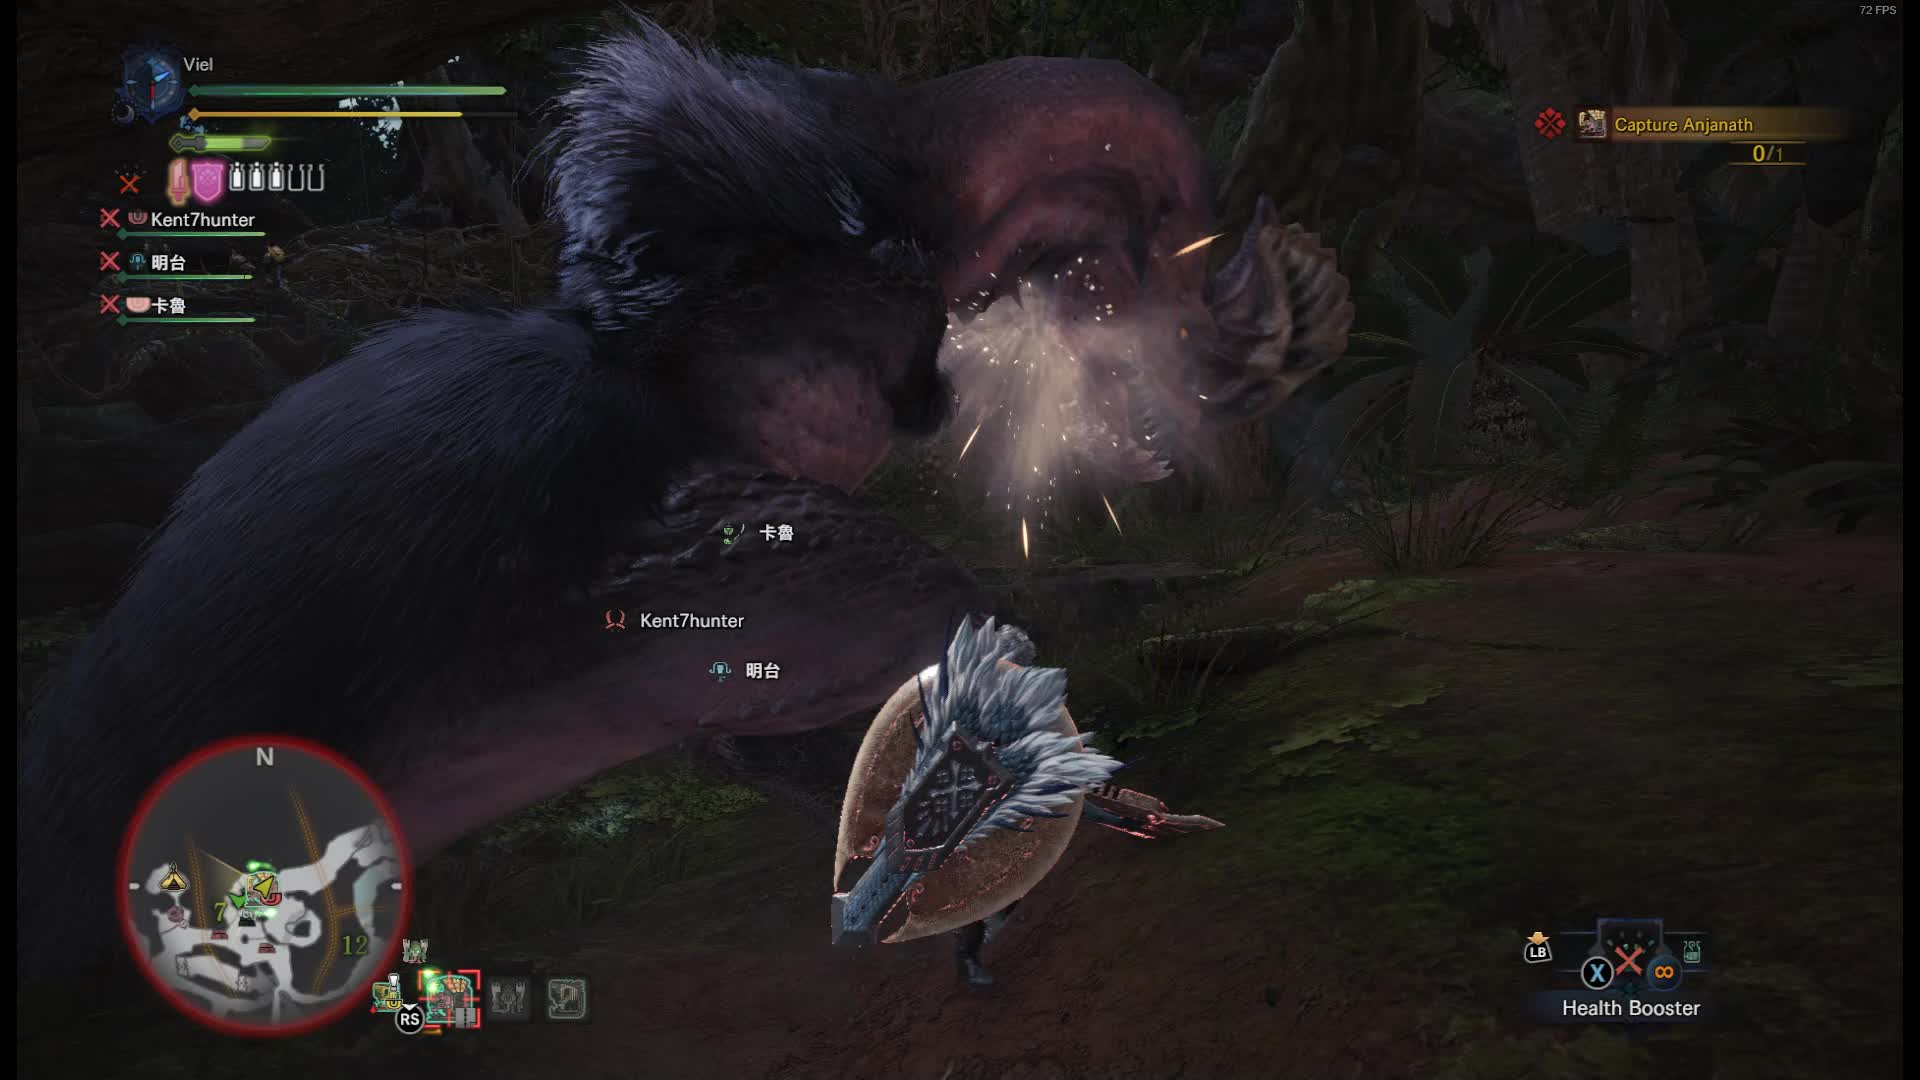 ▷ MHW Dodogama stylish tail cut GIF by noctisanima - Find